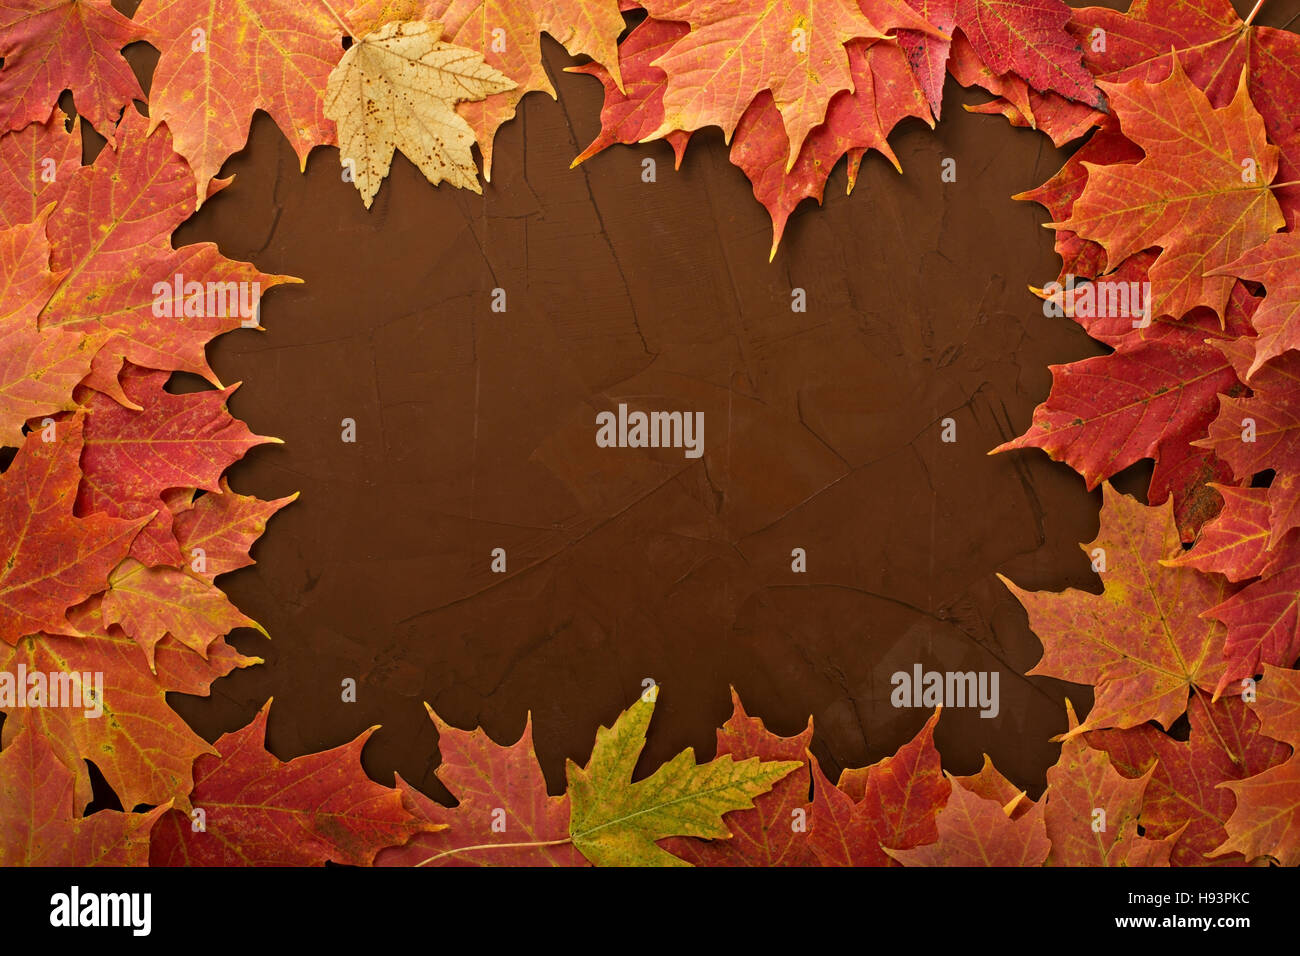 Fall leaves frame on brown background - Stock Image